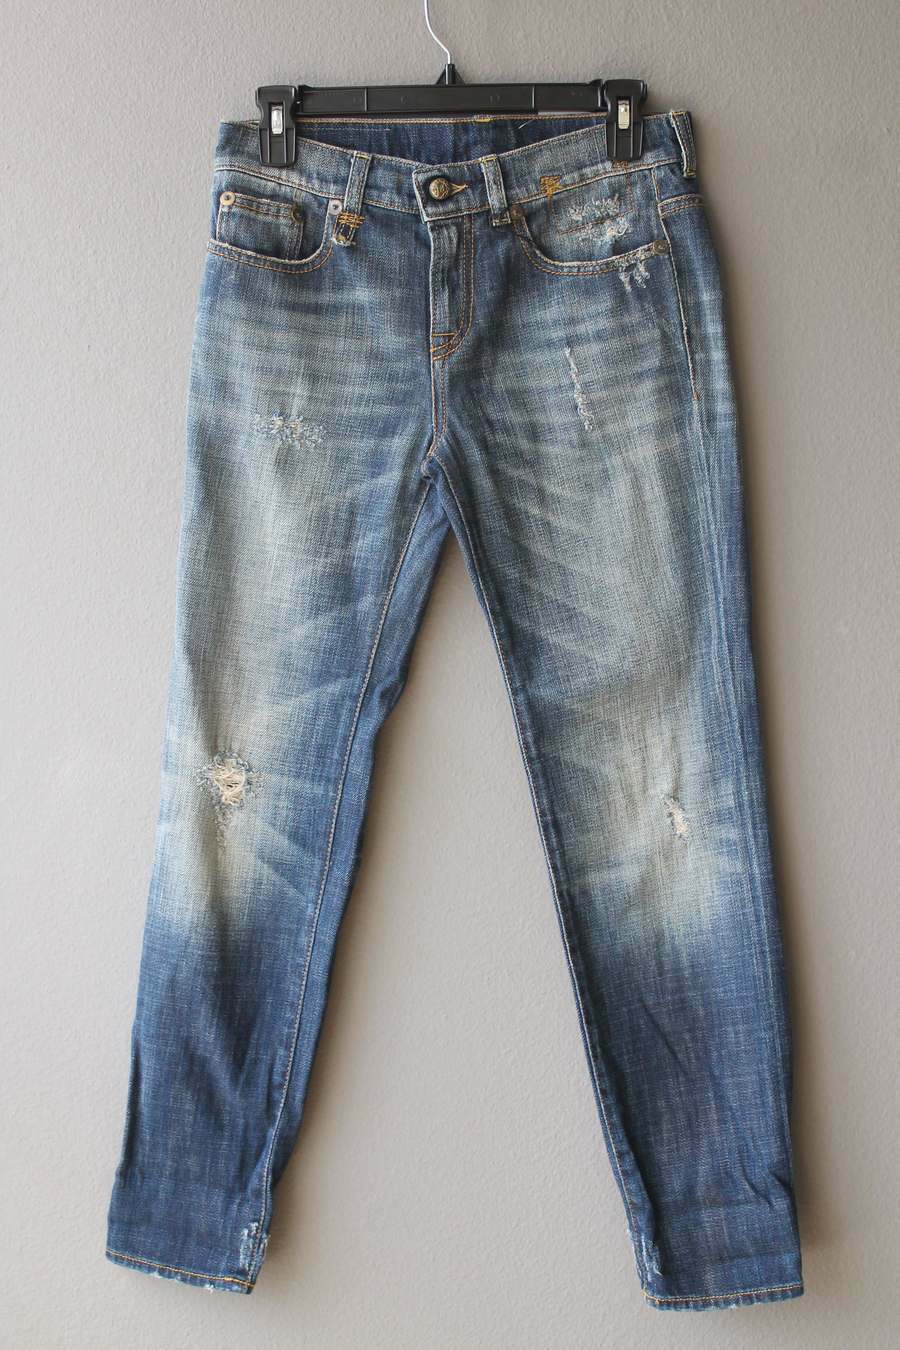 R13 WOMENS JEANS RELAXED SKINNY blueE SIZE 24 NEW